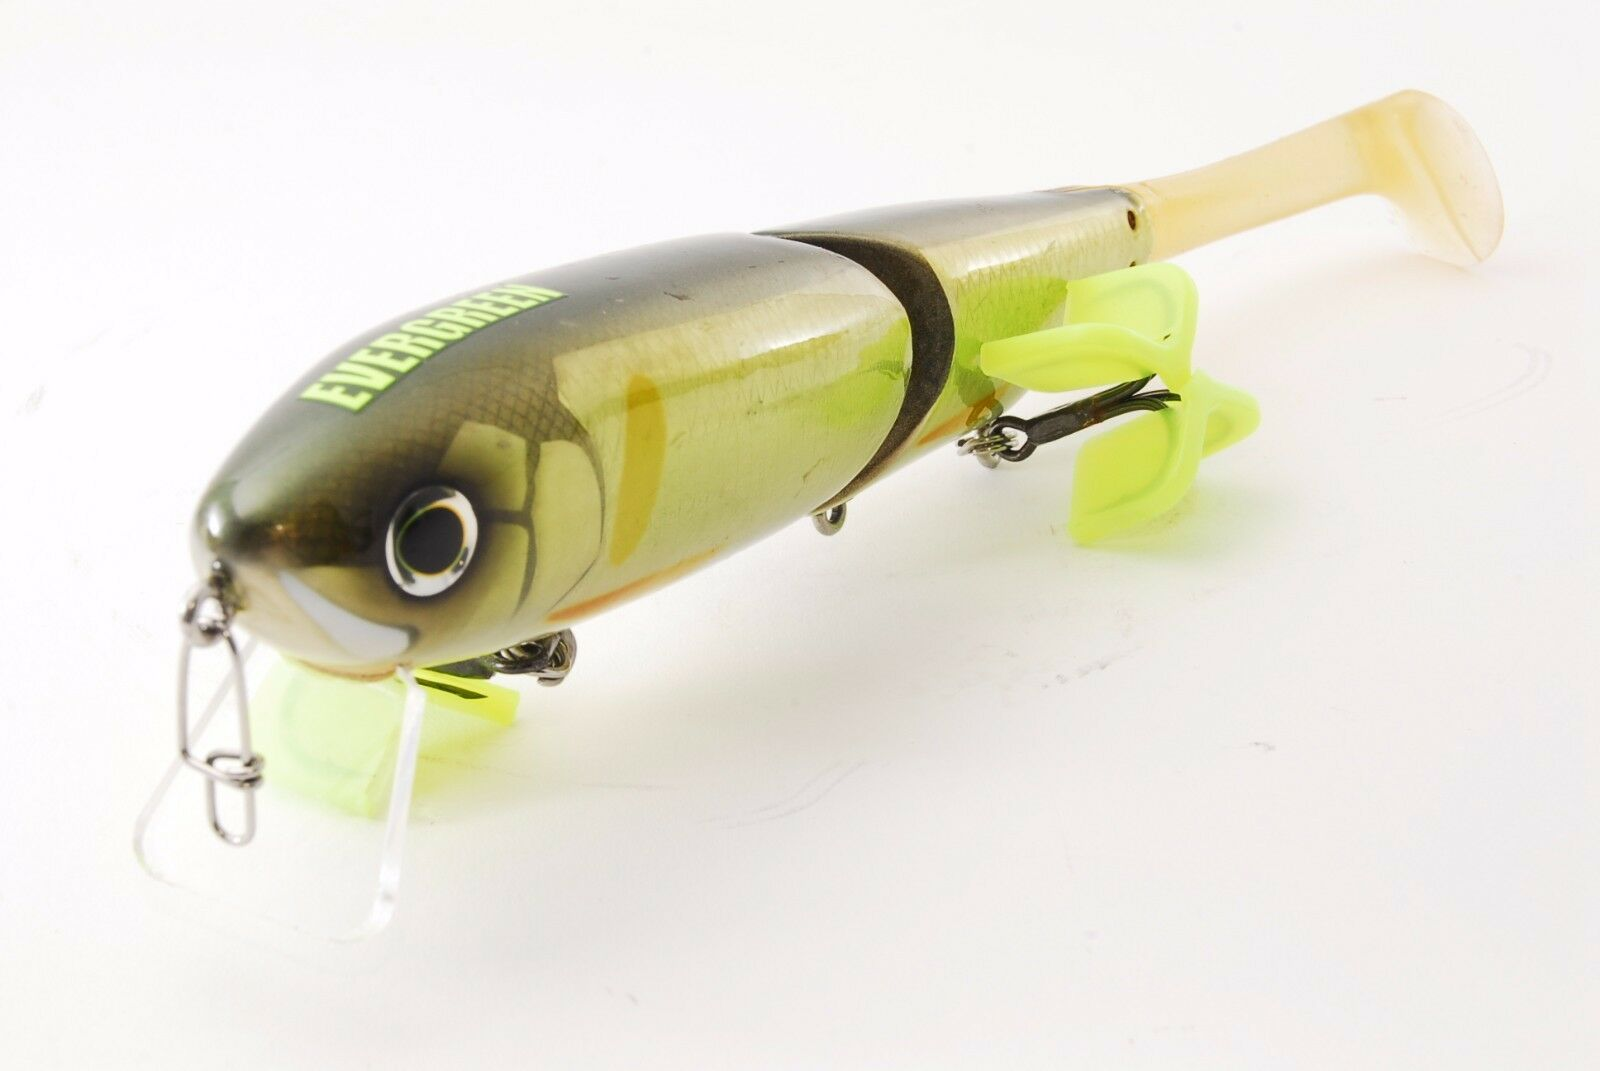 Evergeen  TIMBER FLASH   Combat Lures 23cm, 3oz  Ayu   Used in Japan